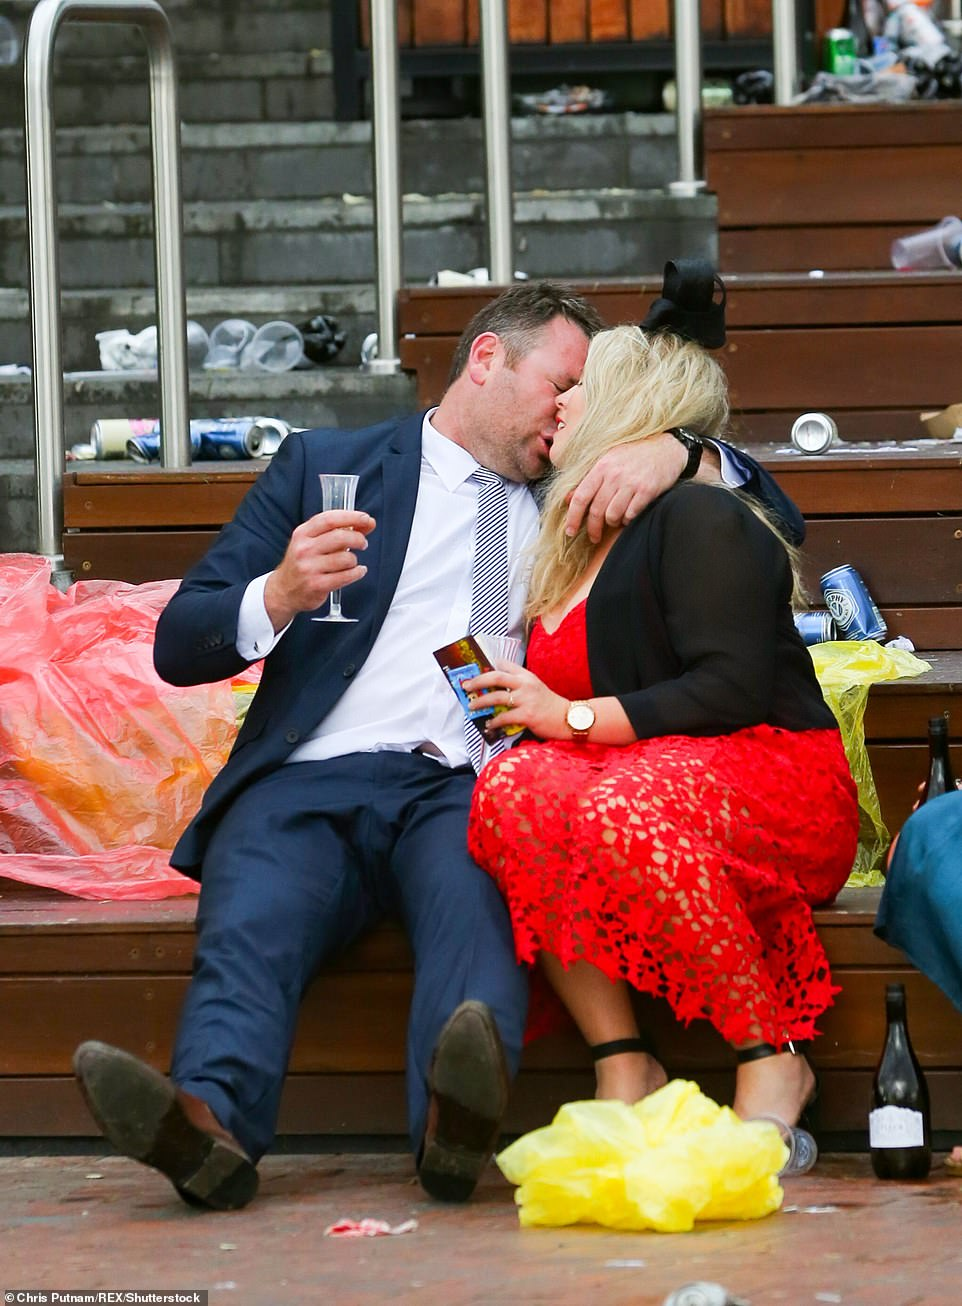 A couple cosy up after the race following a day filled with champagne and festivities in Melbourne